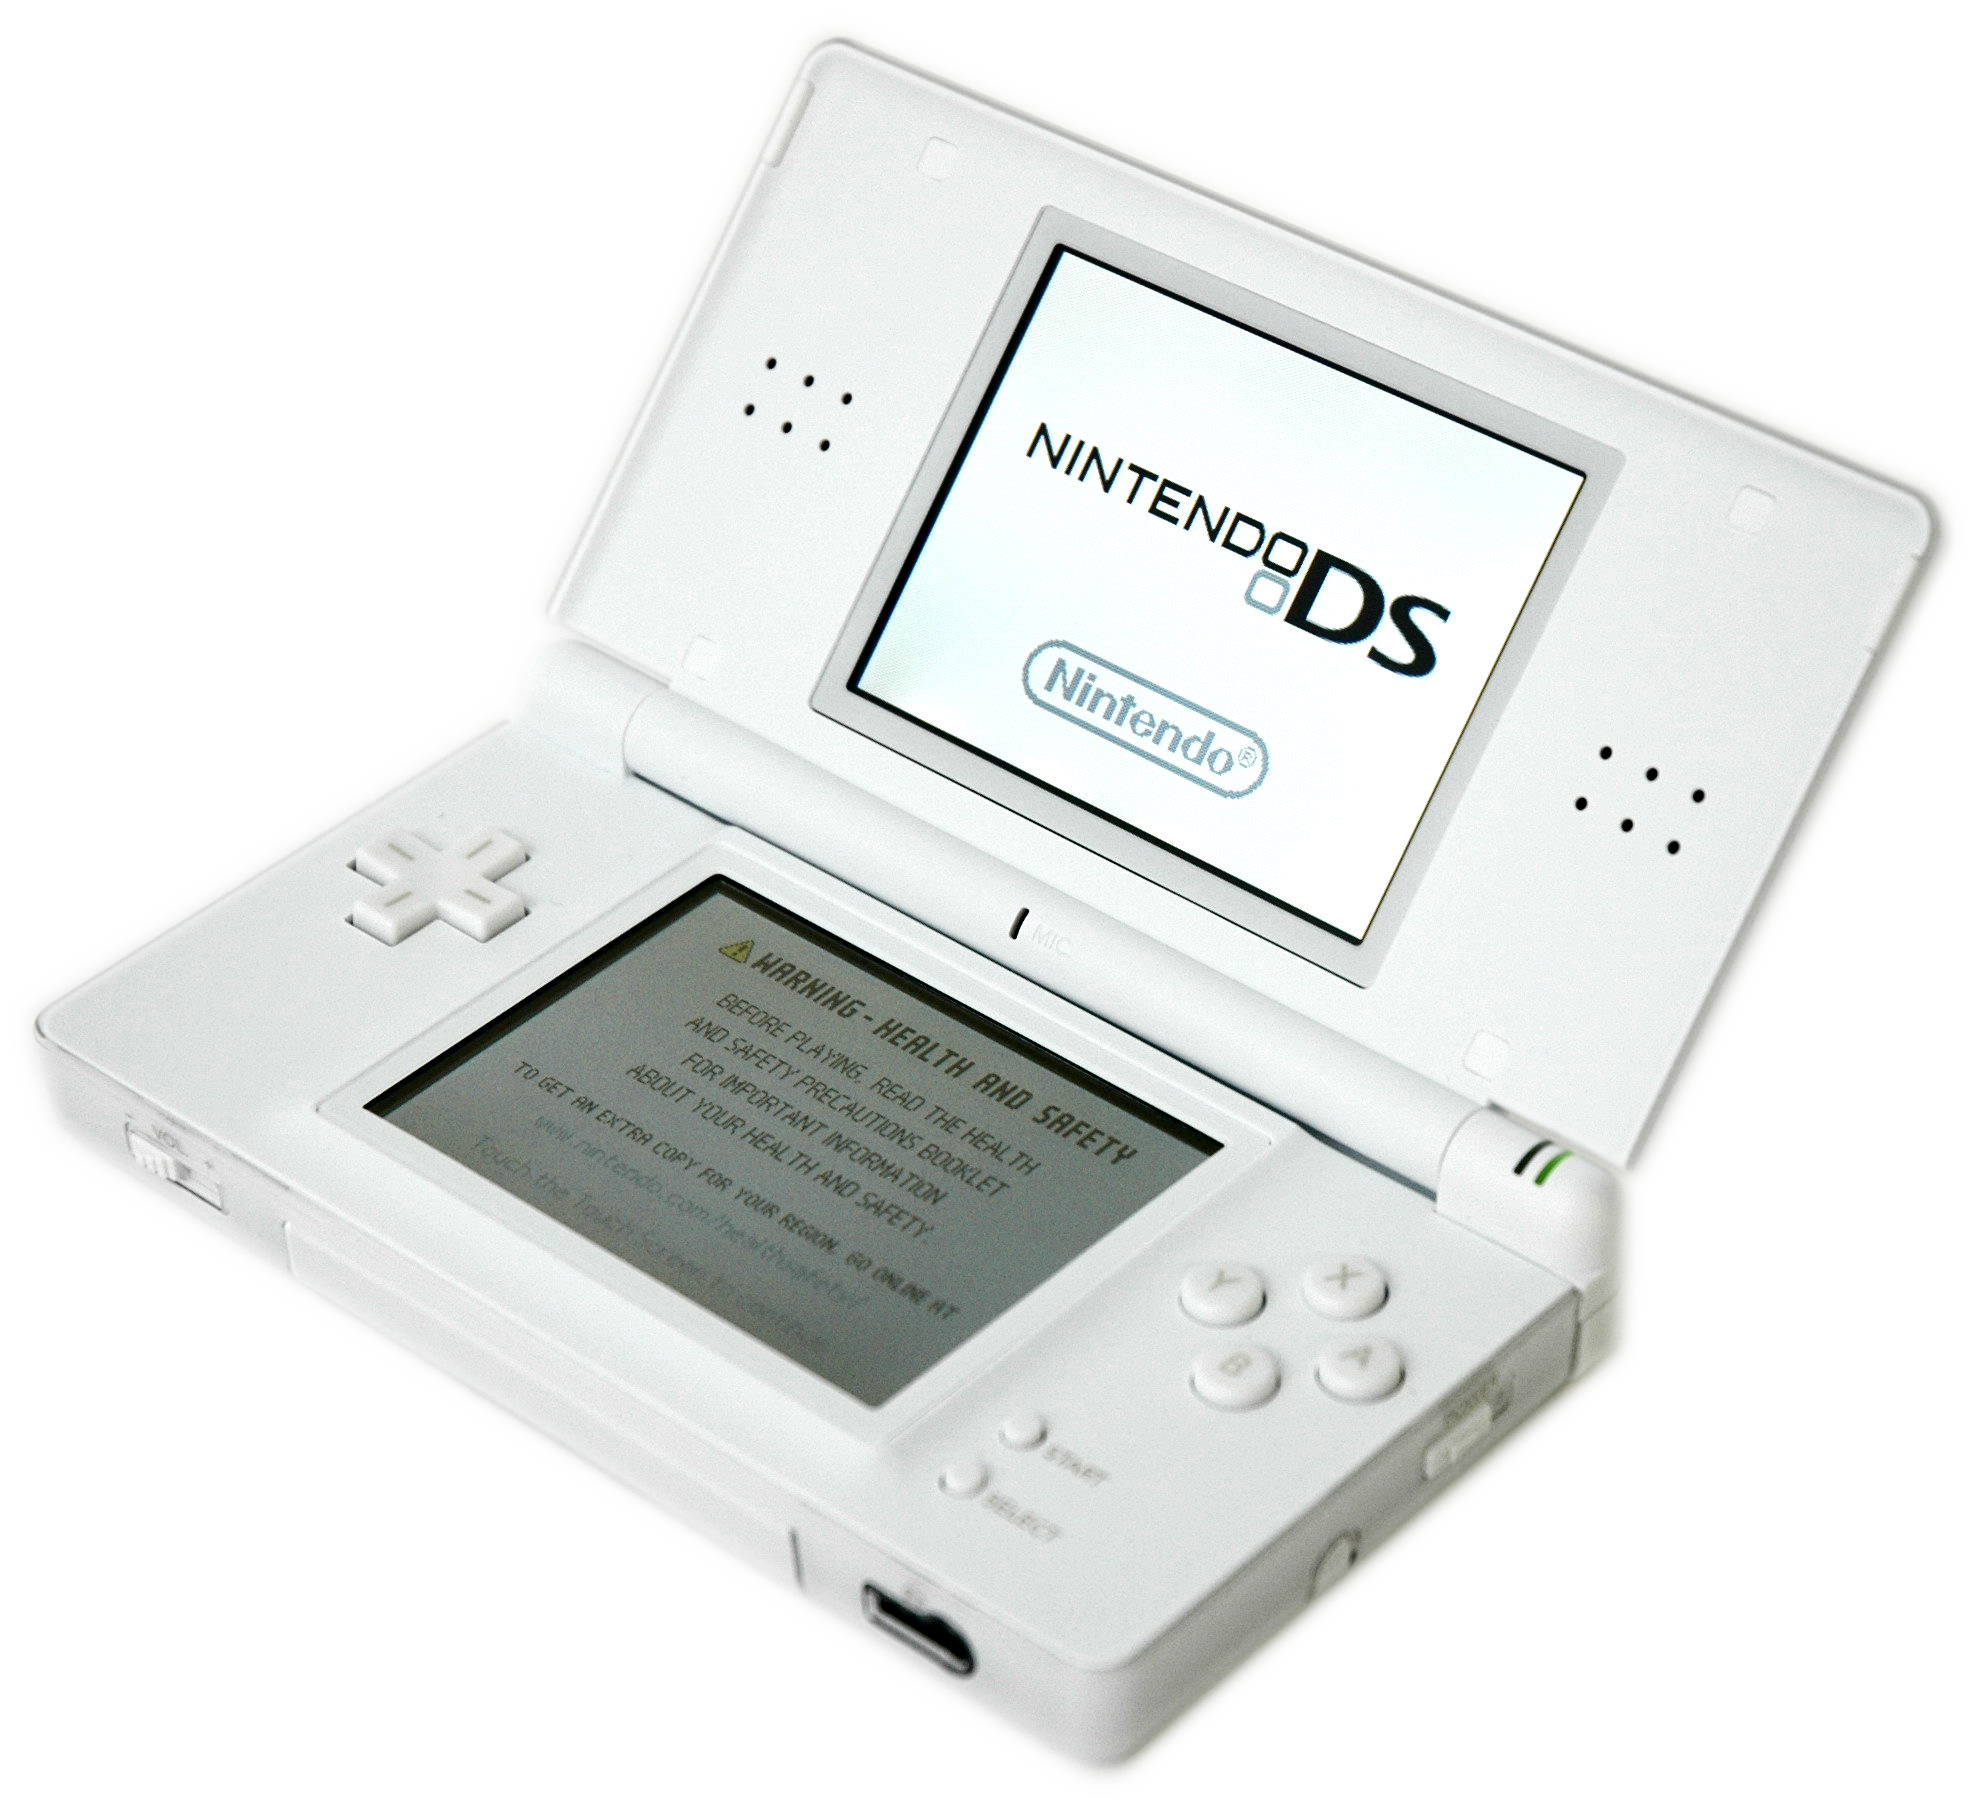 Nintendo DS. I still have my pink and white one! 8/16/13